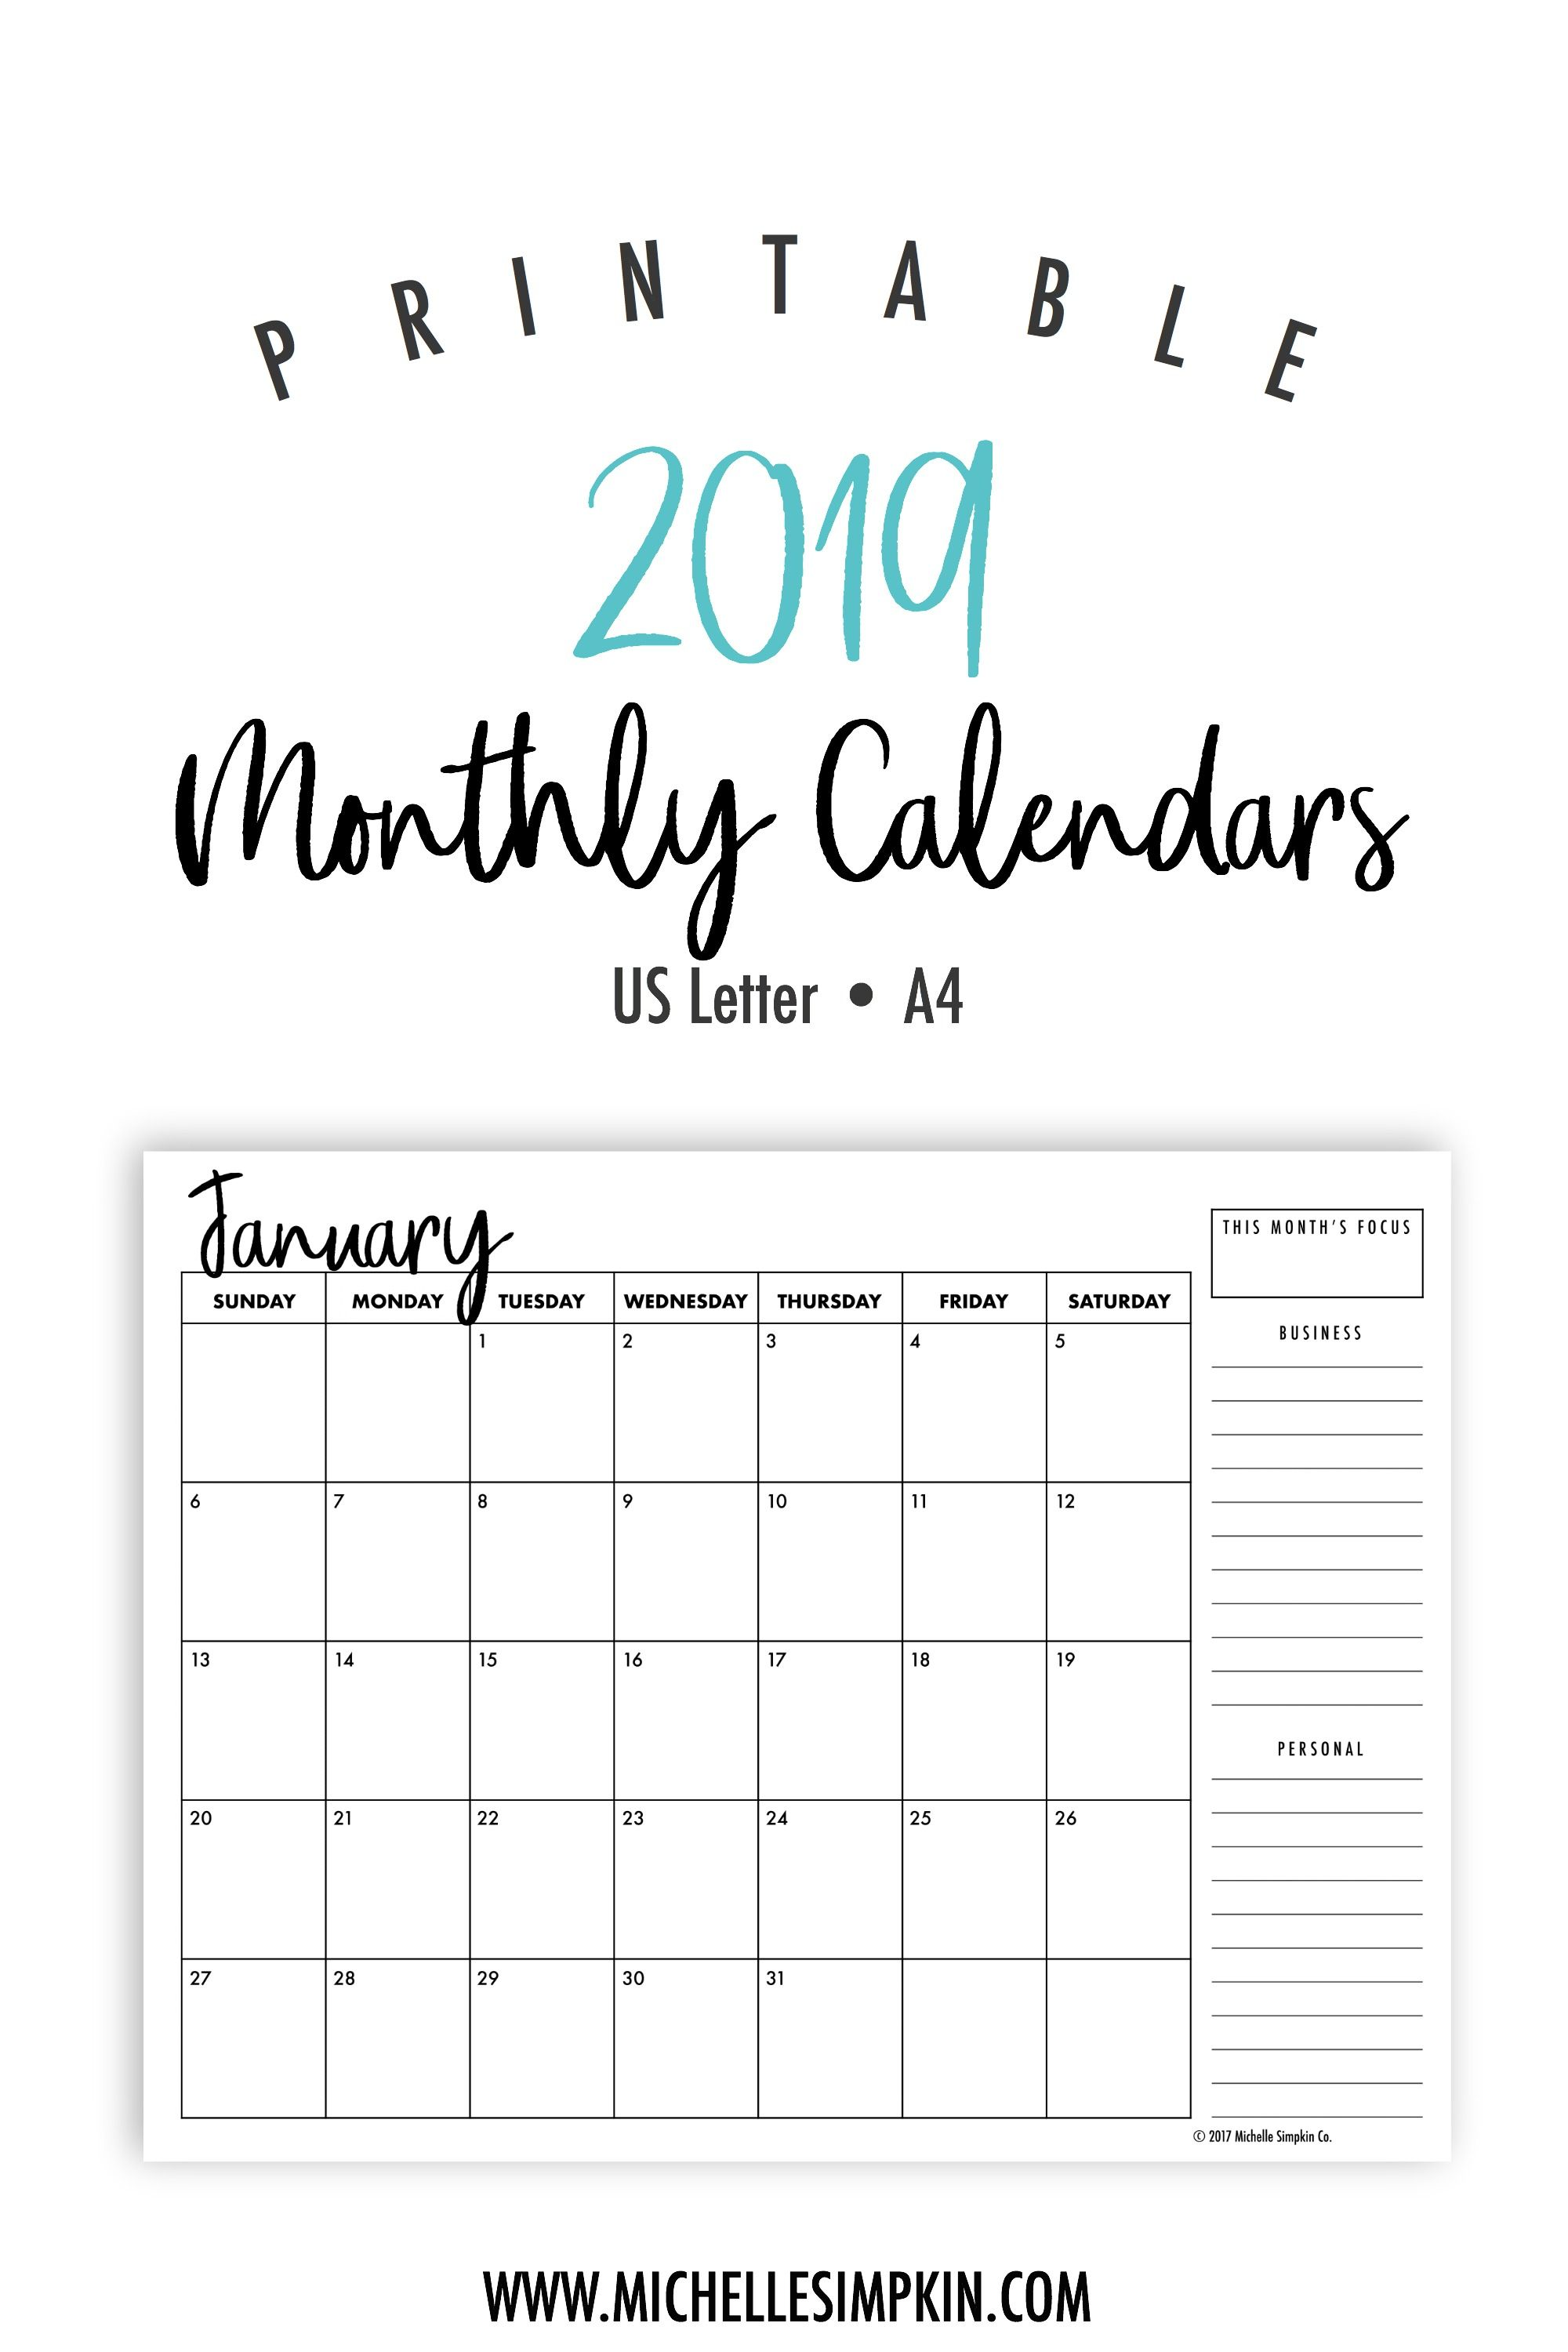 Monthly Calendars 2019 Printable 2019 Printable Monthly Calendars • Landscape • US Letter • A4